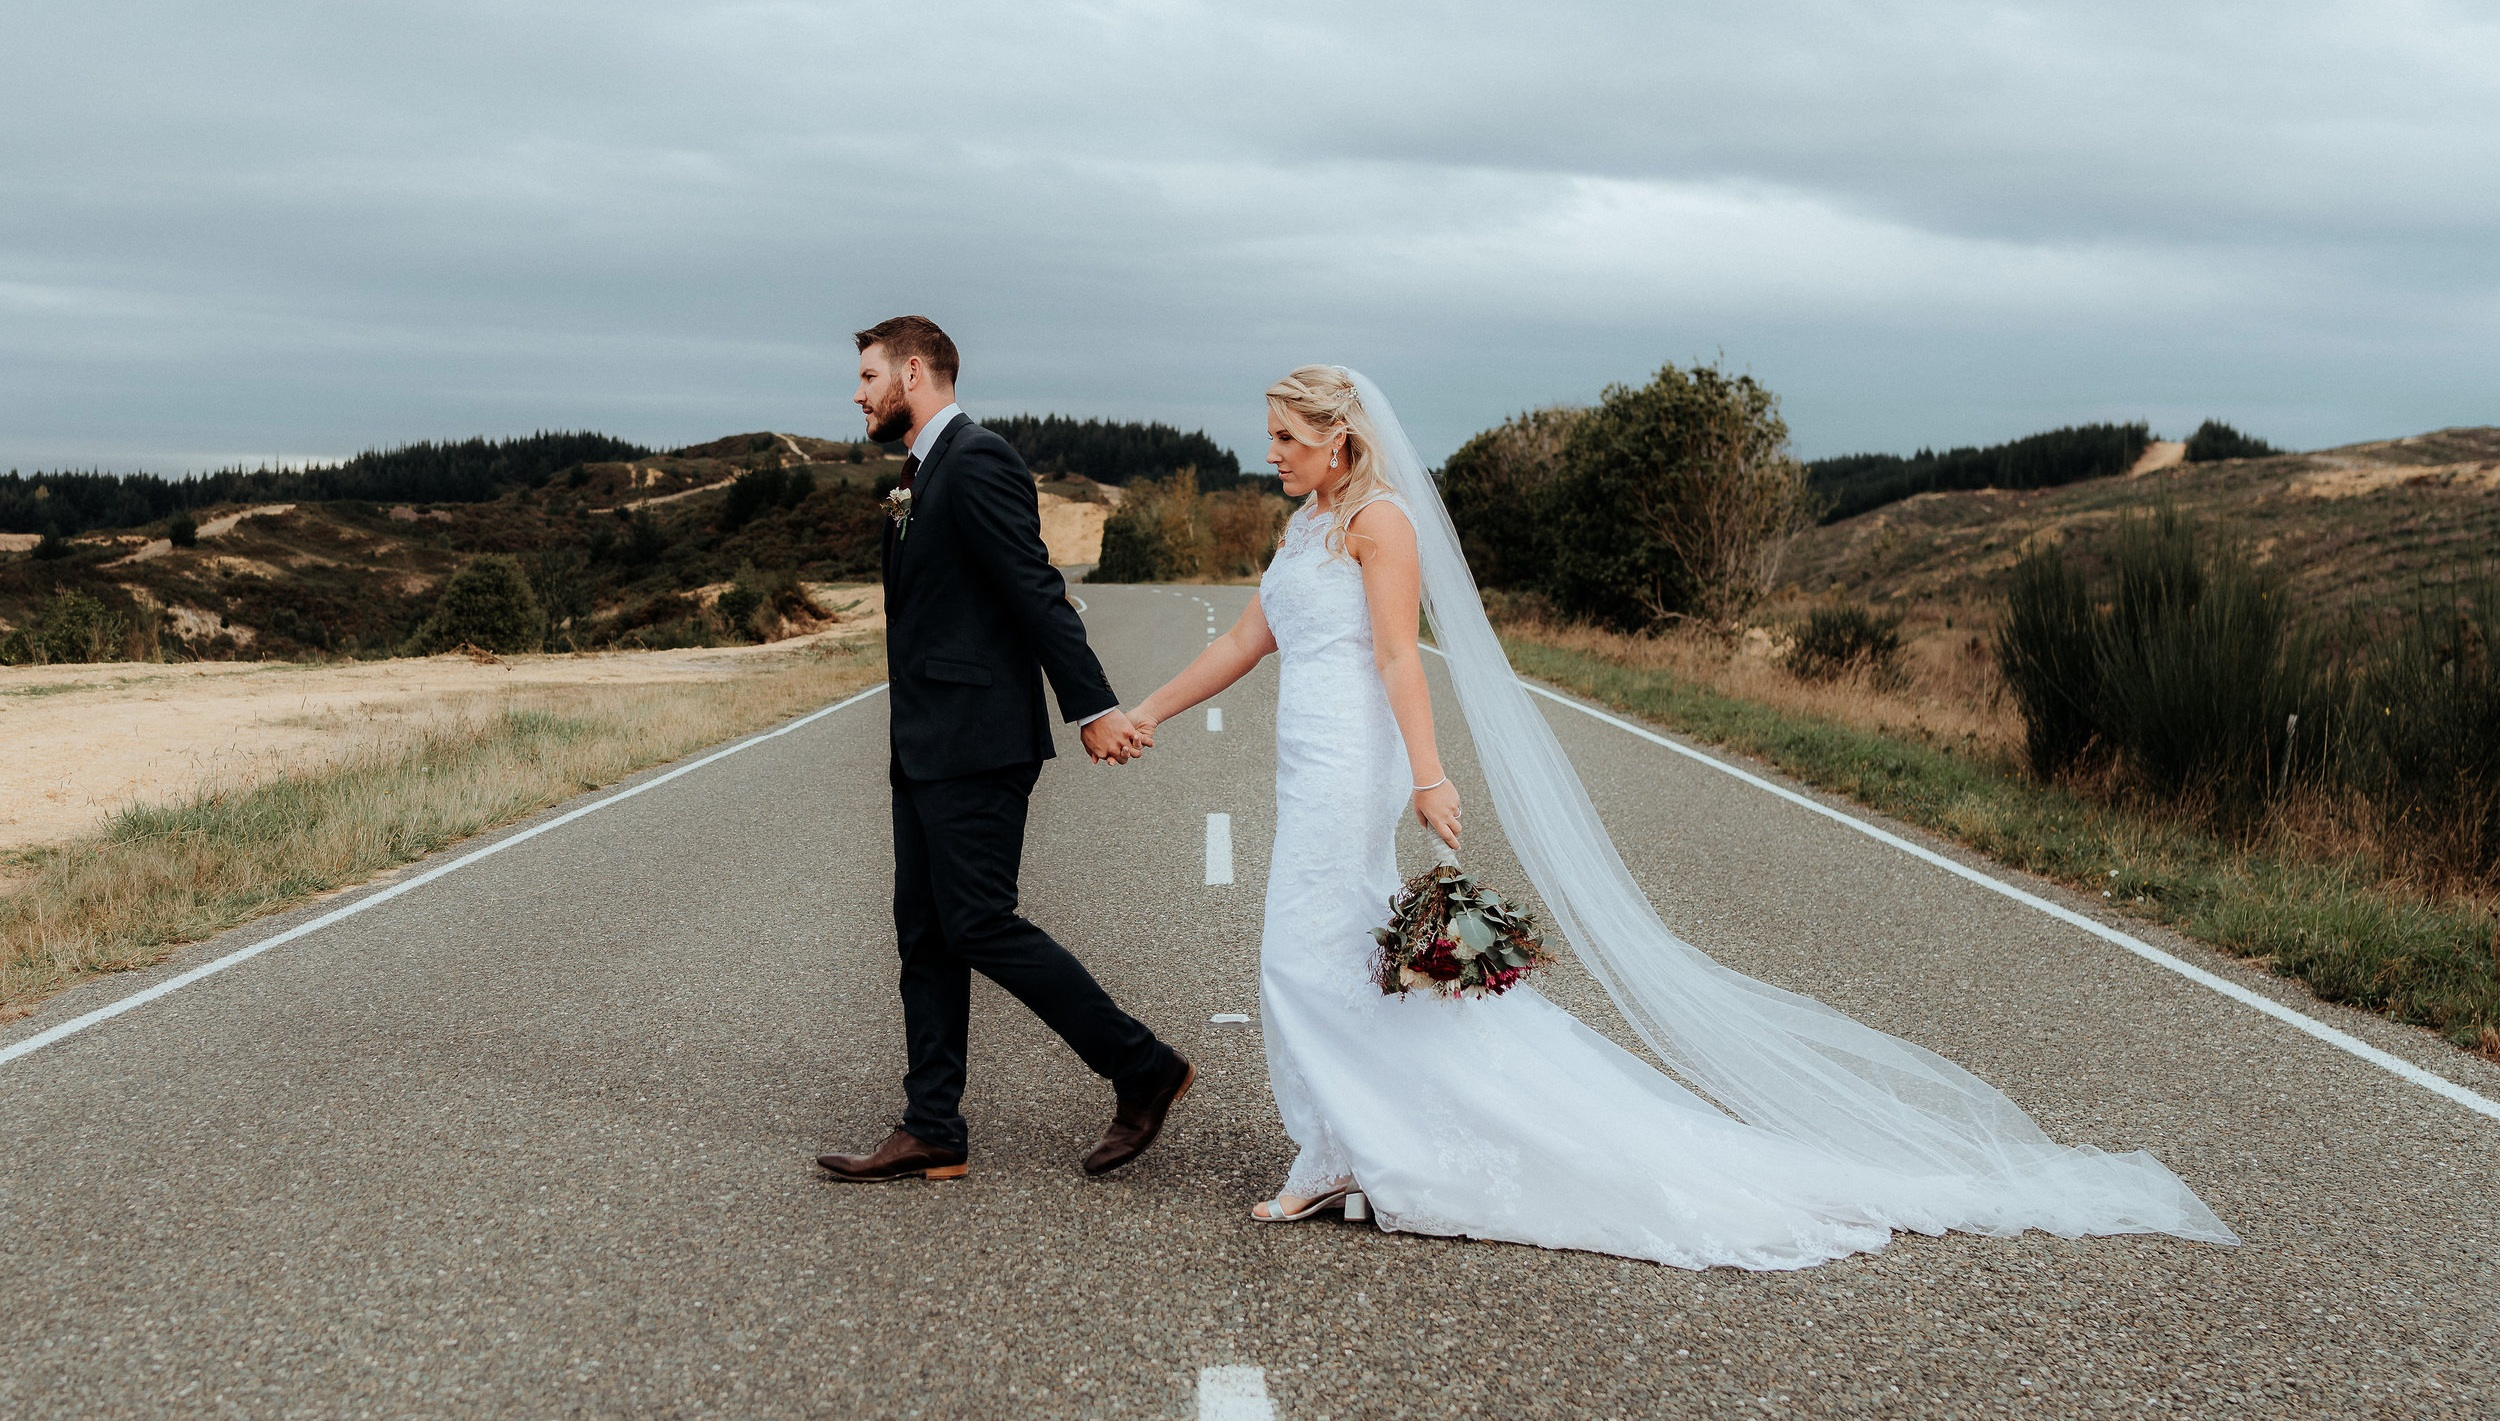 Becky + Dylan - The Honest Lawyer Monaco - Nelson, New Zealand